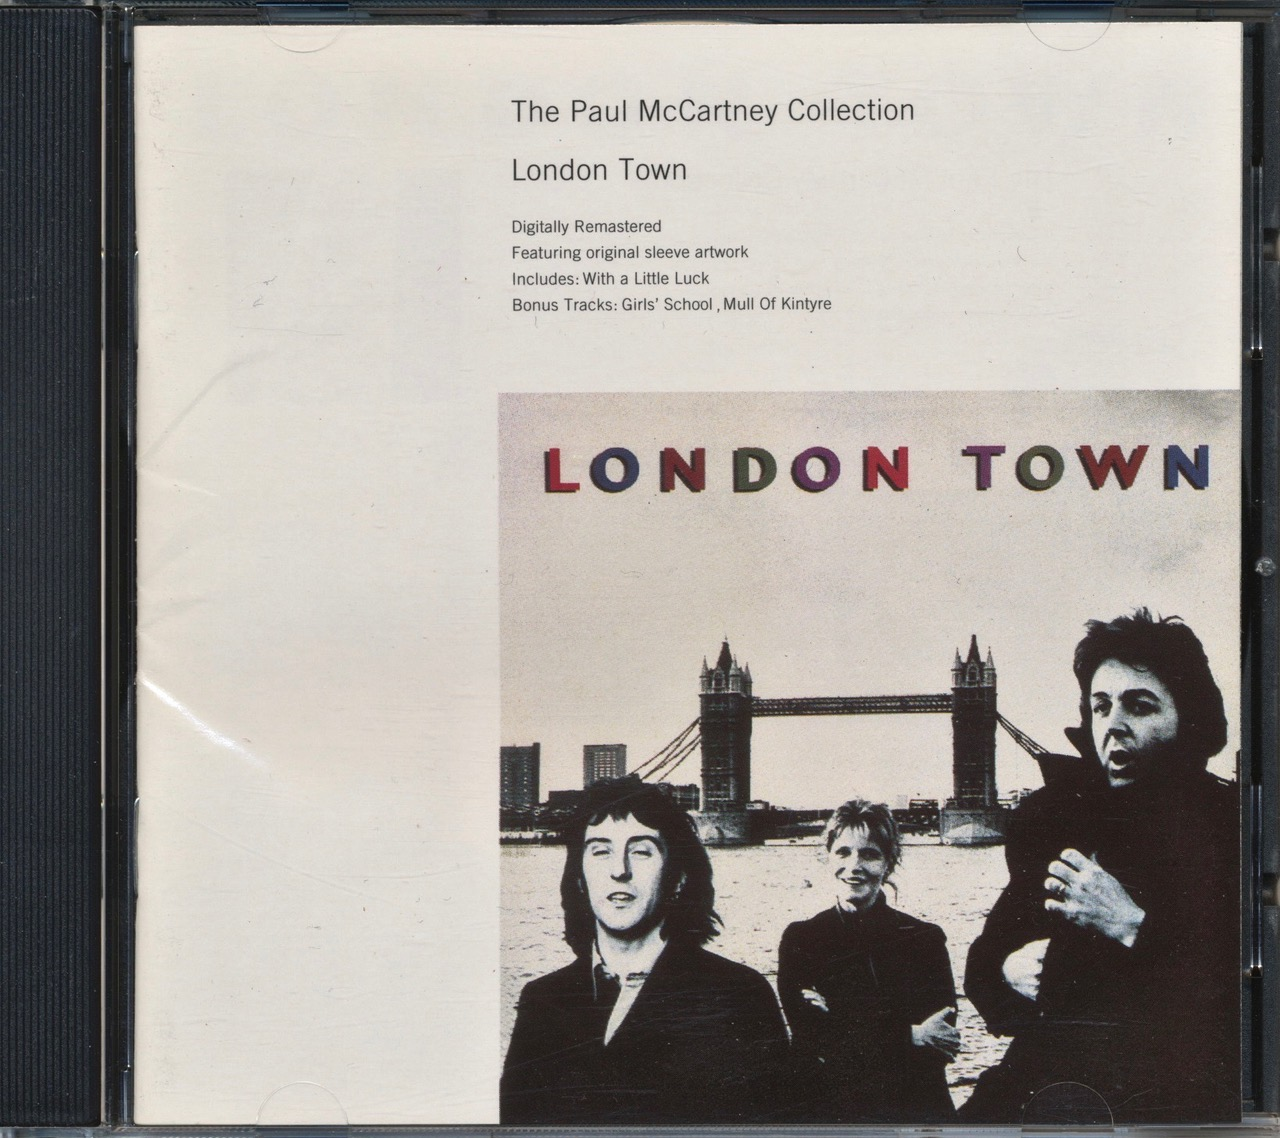 The Paul McCartney Collection – 1993 Reissue Series